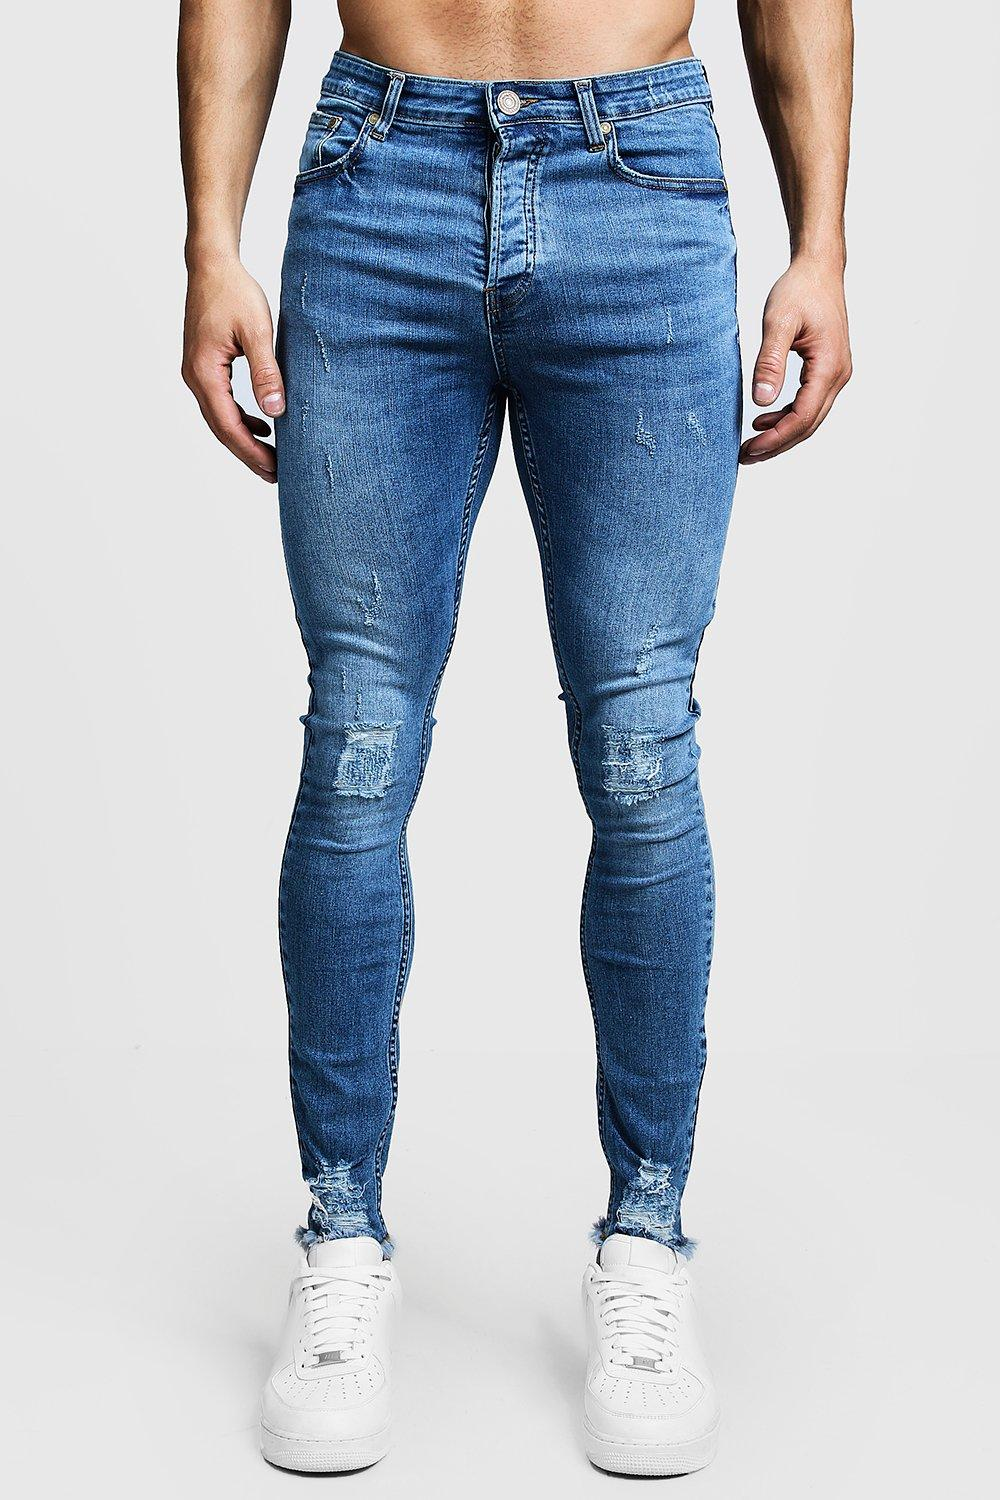 83dde1e7f0 Super Skinny Ripped Knee Jeans With Raw Hem. Hover to zoom